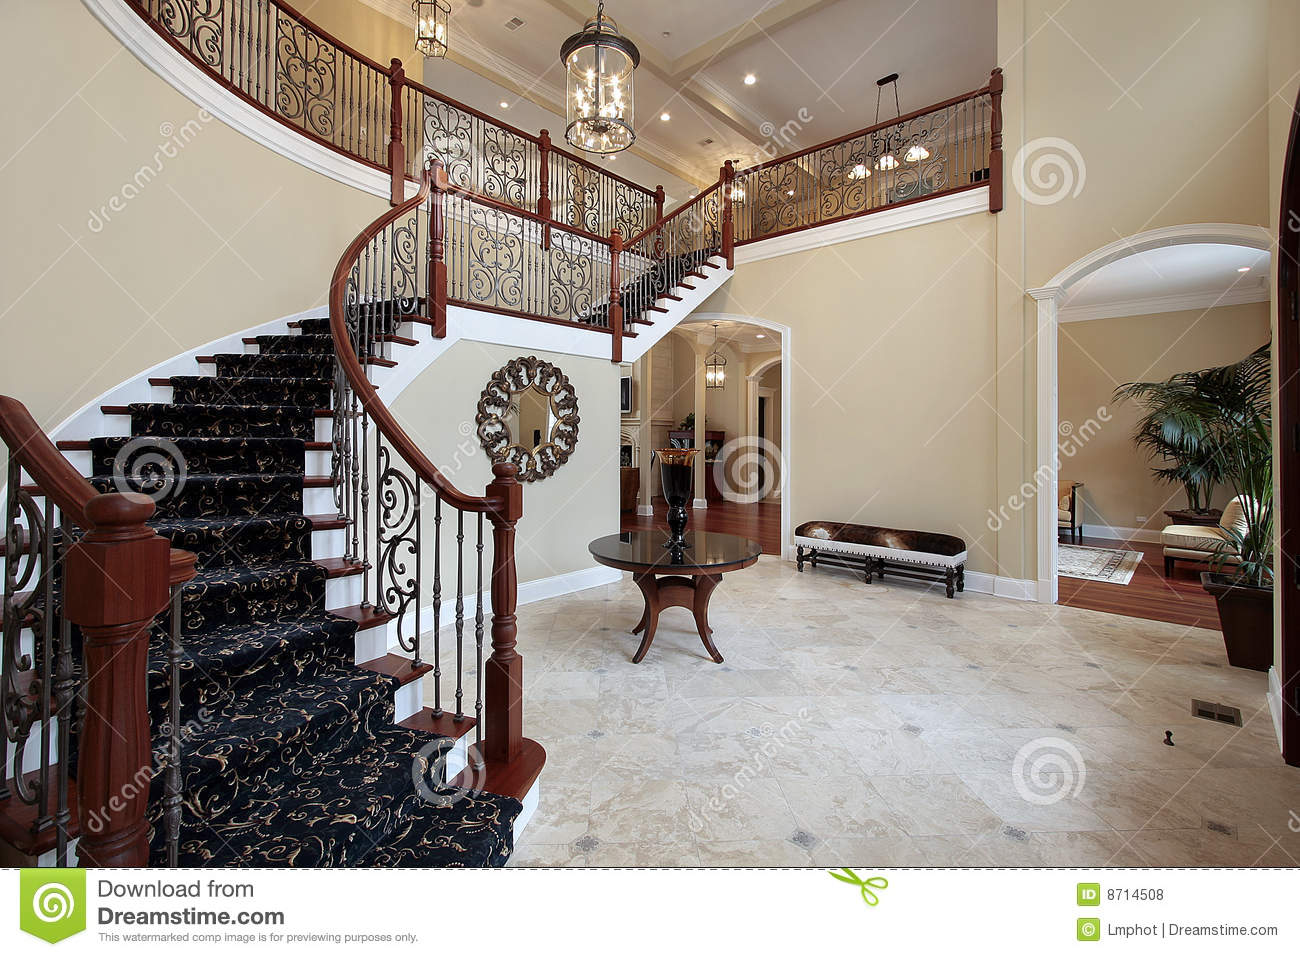 Foyer in luxury home royalty free stock photos image for Free luxury home images